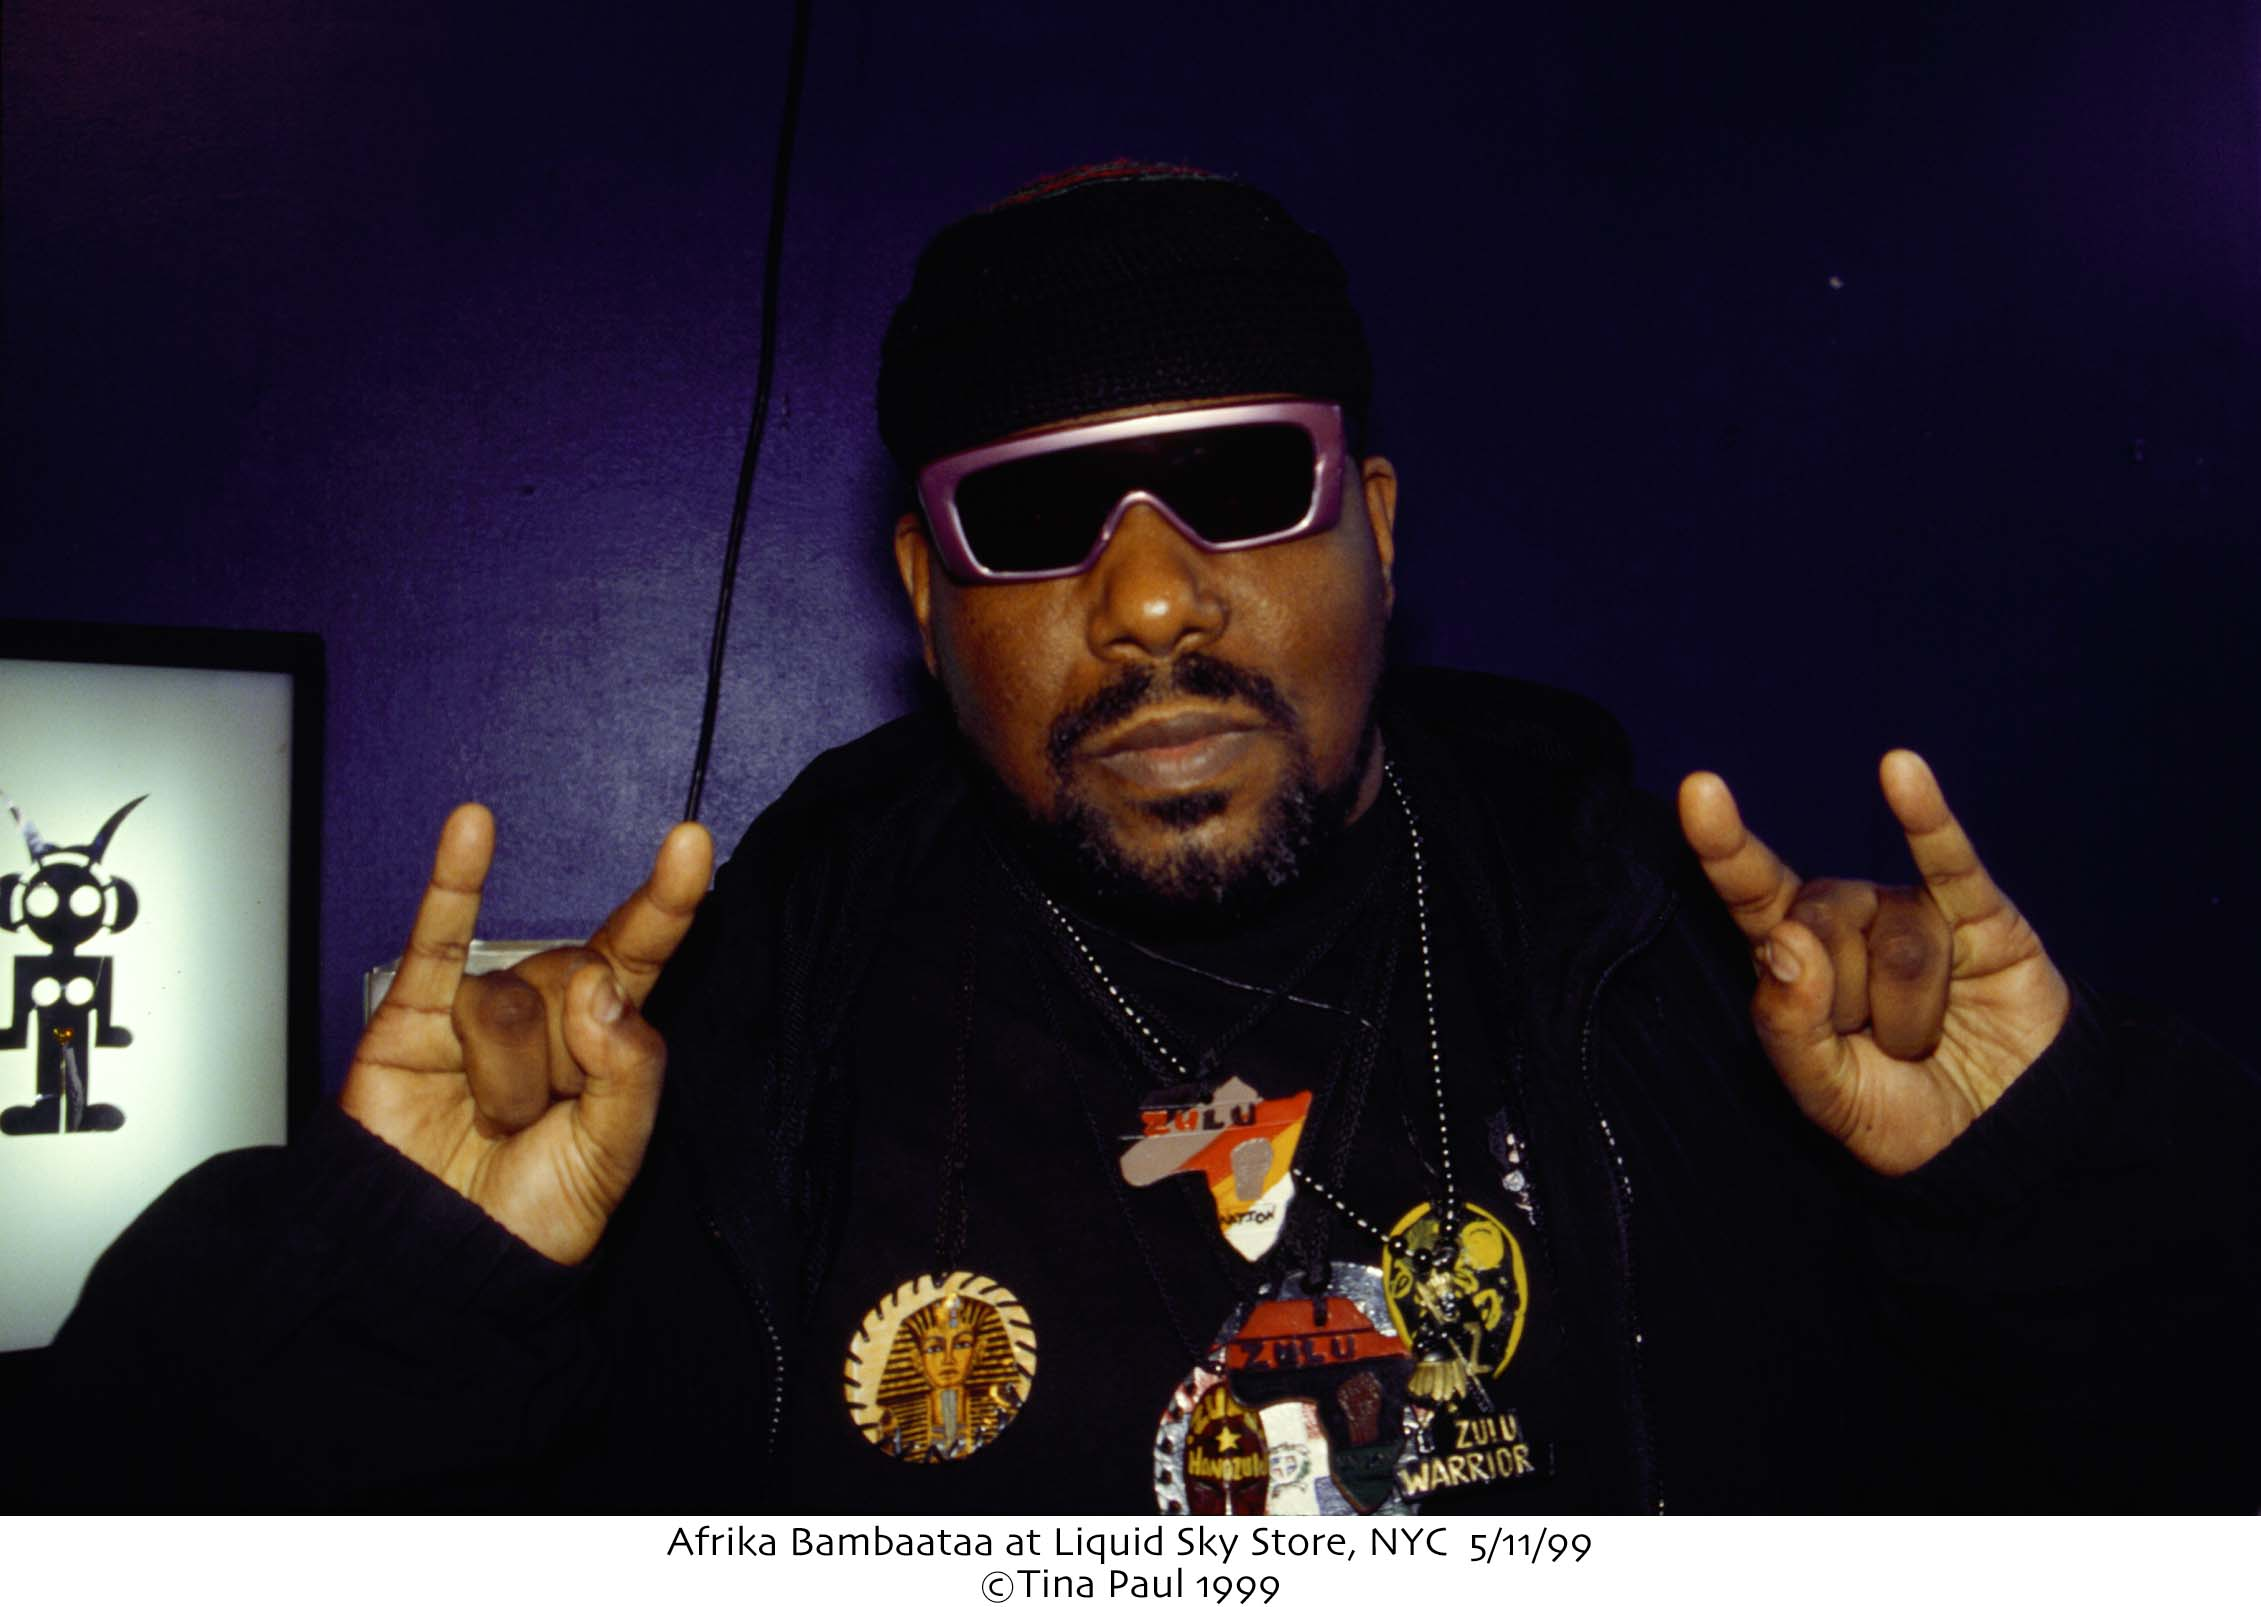 Afrika Bambaataa at Liquid Sky Store, NYC 5/11/99 ©Tina Paul 1999